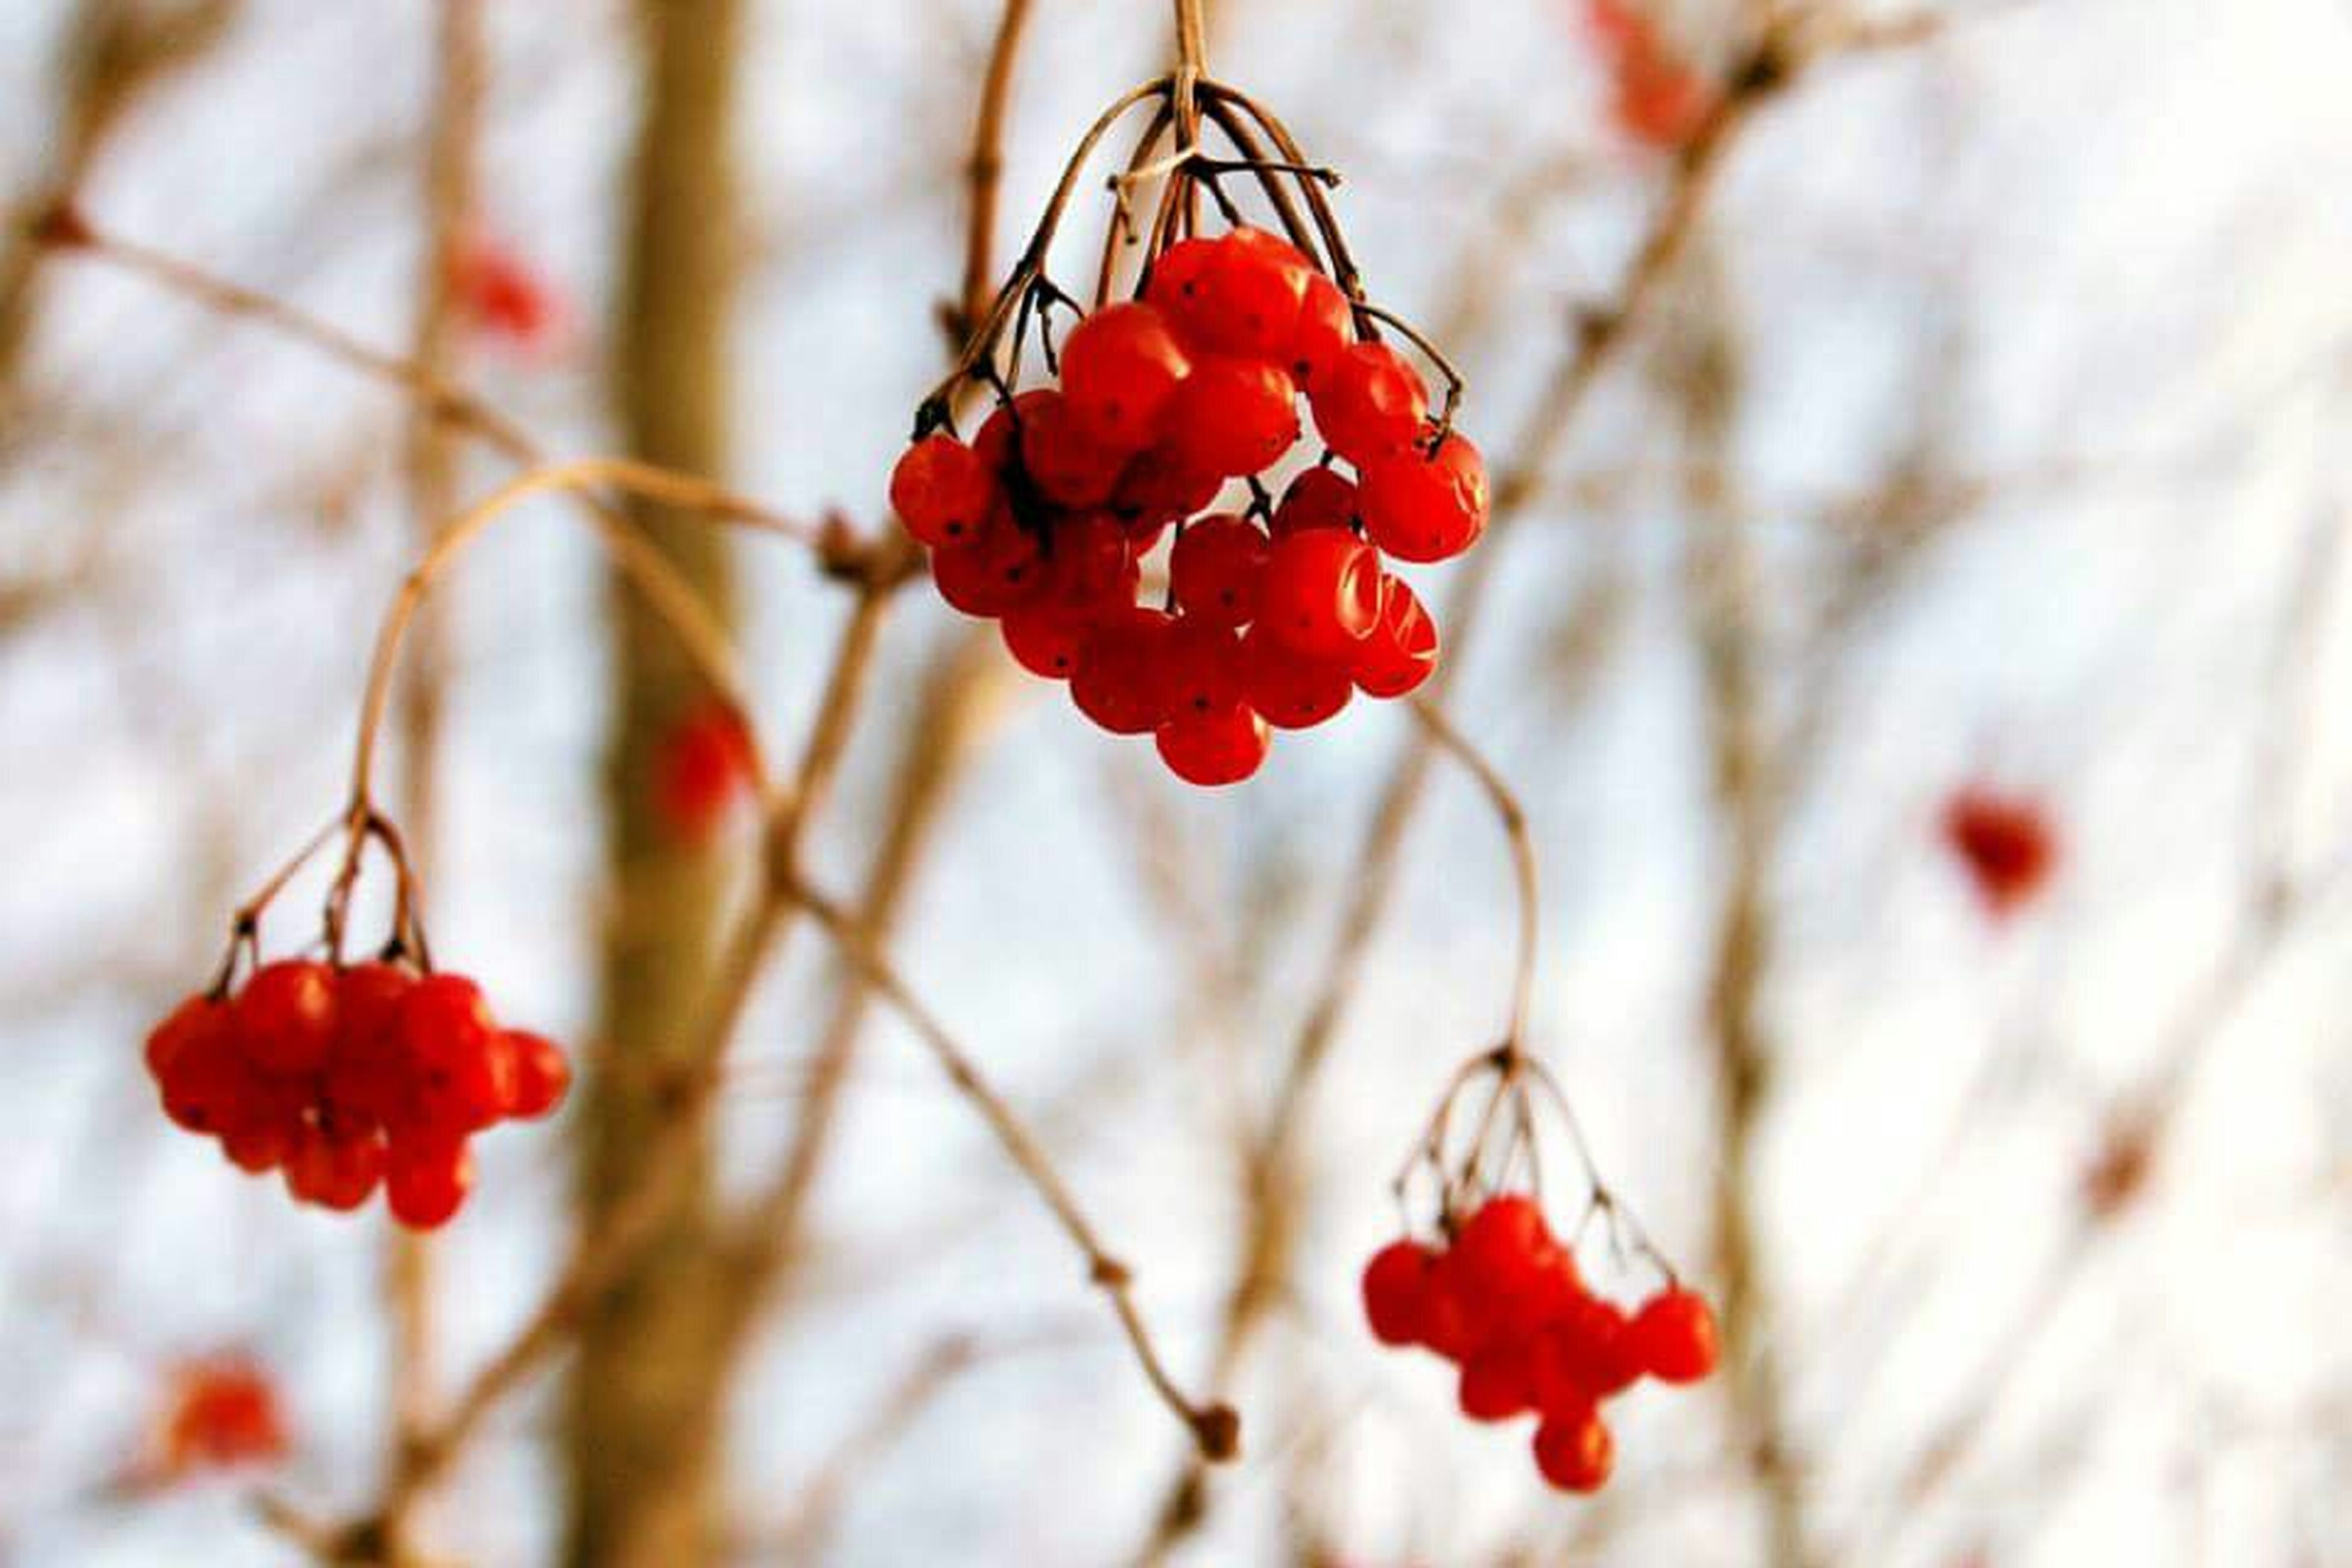 red, flower, freshness, fragility, growth, focus on foreground, beauty in nature, branch, close-up, nature, petal, twig, tree, plant, in bloom, season, blossom, flower head, selective focus, blooming